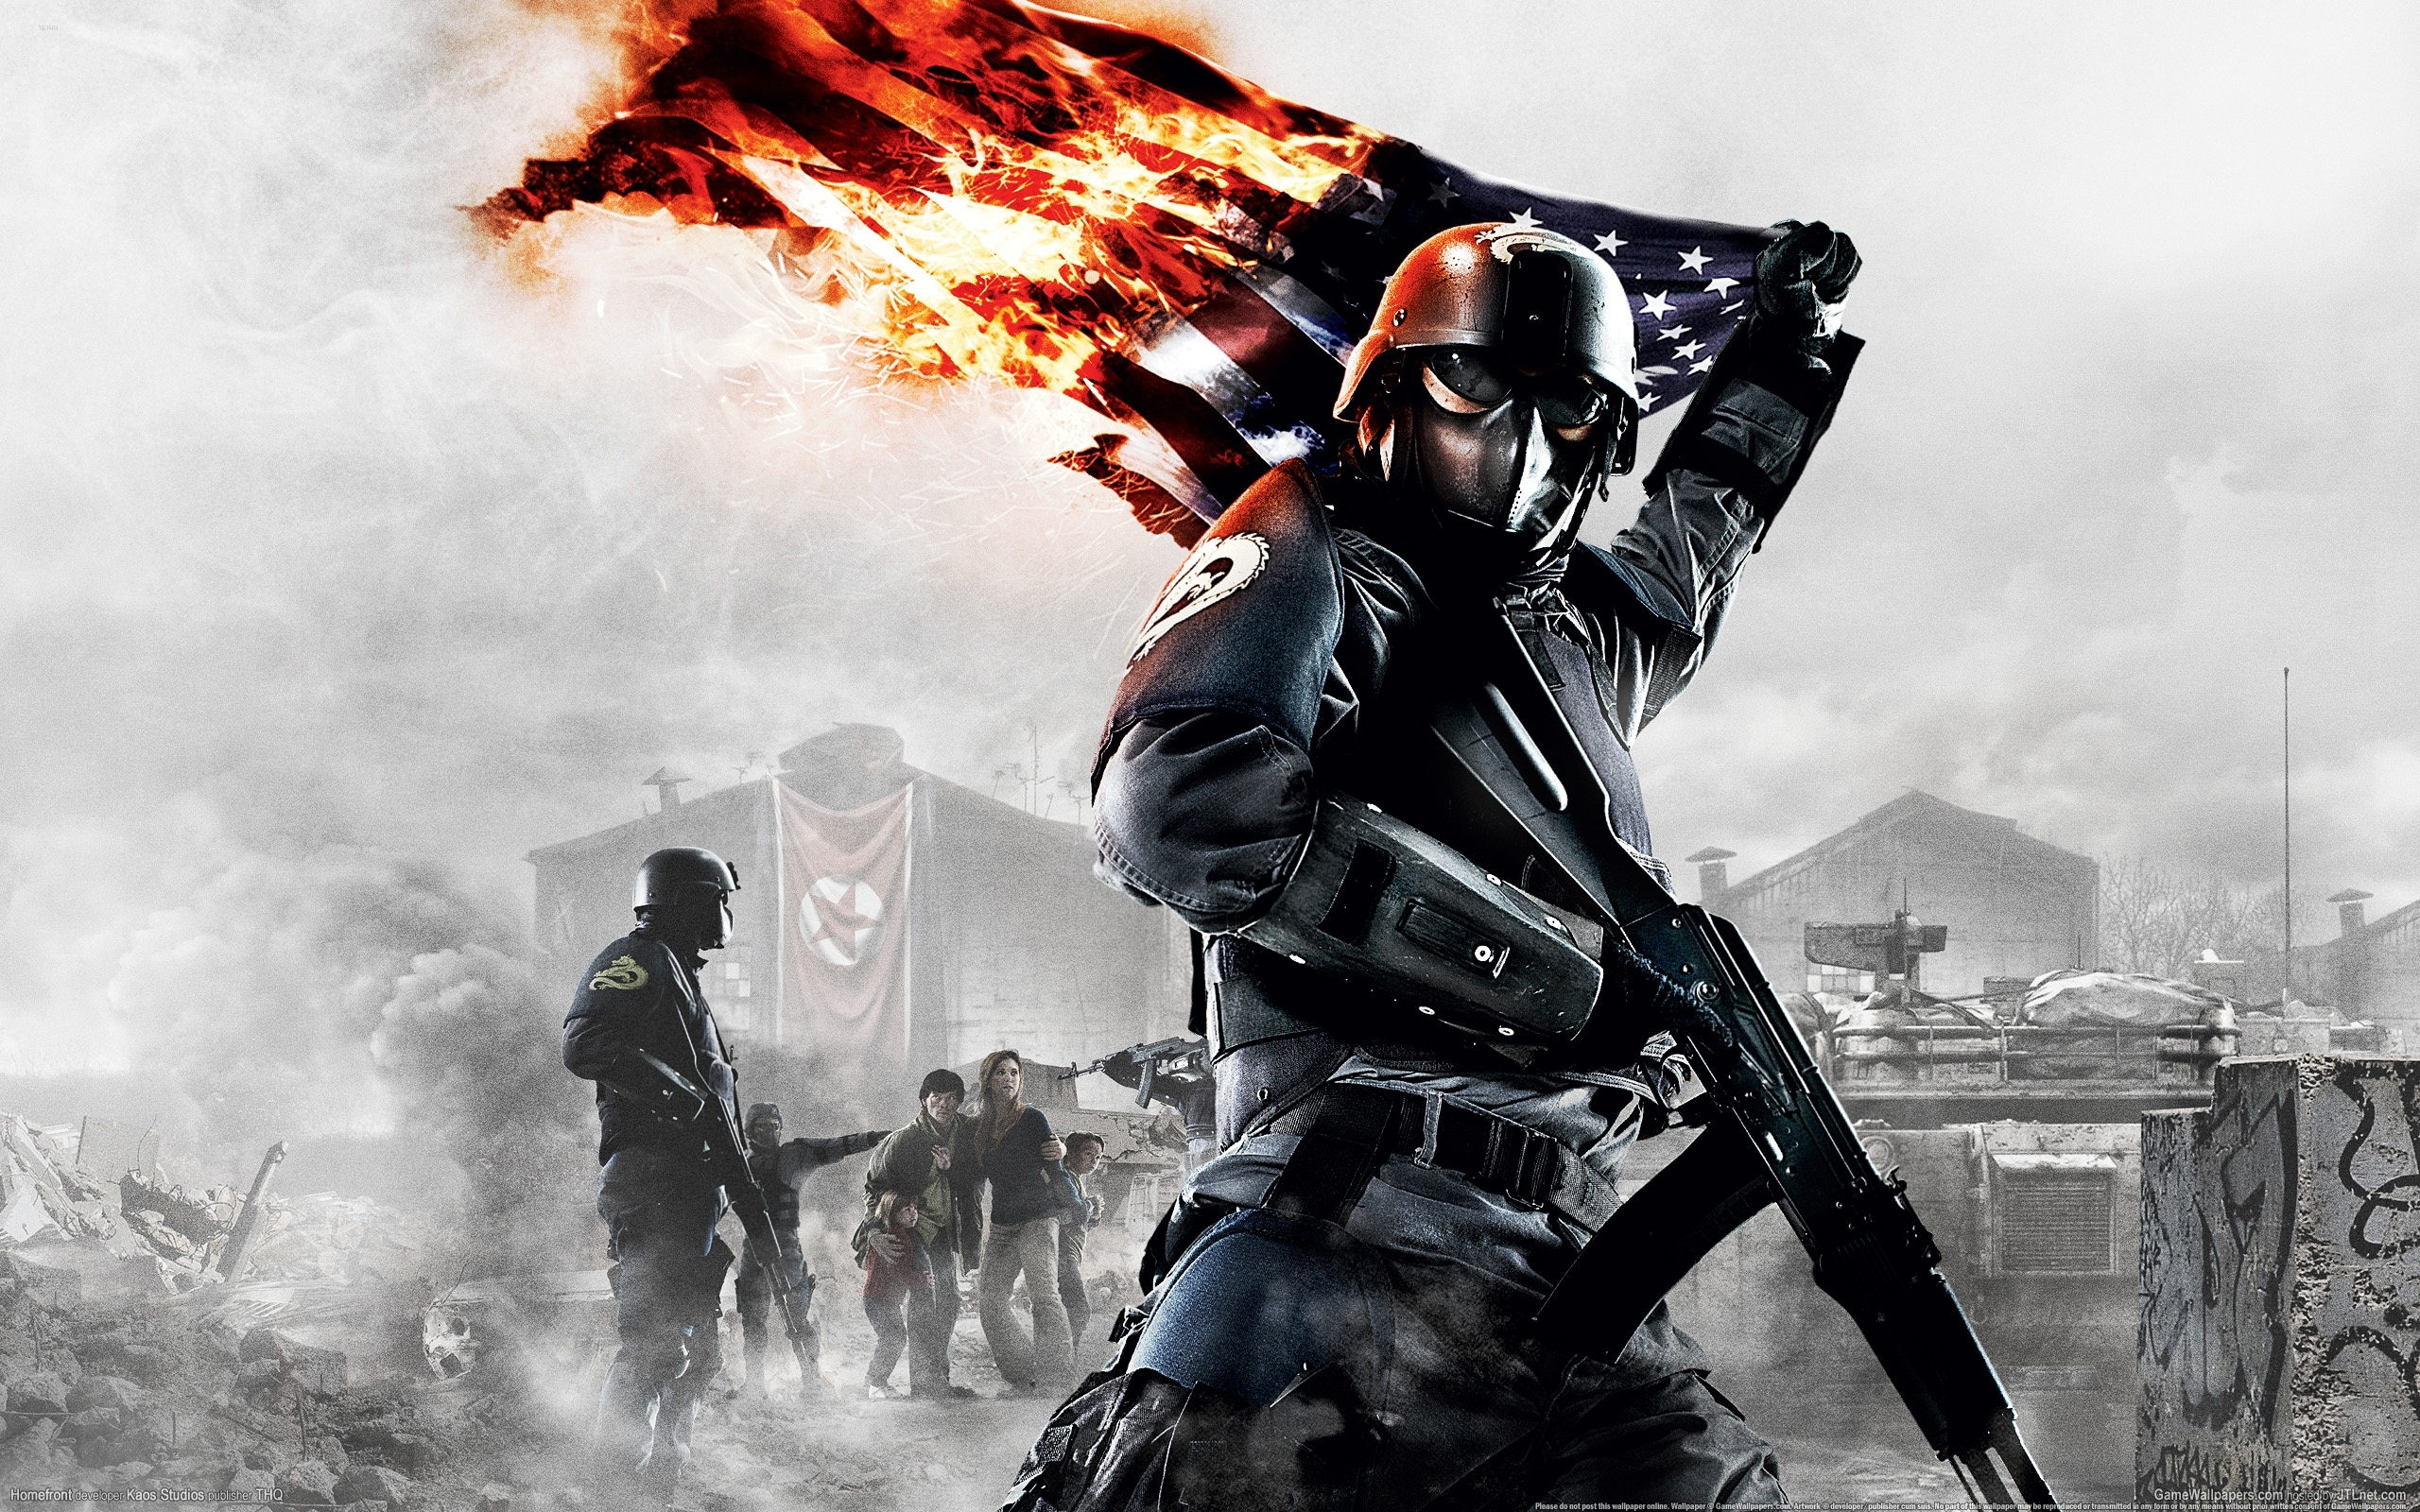 Homefront wallpaper 2560x1600.